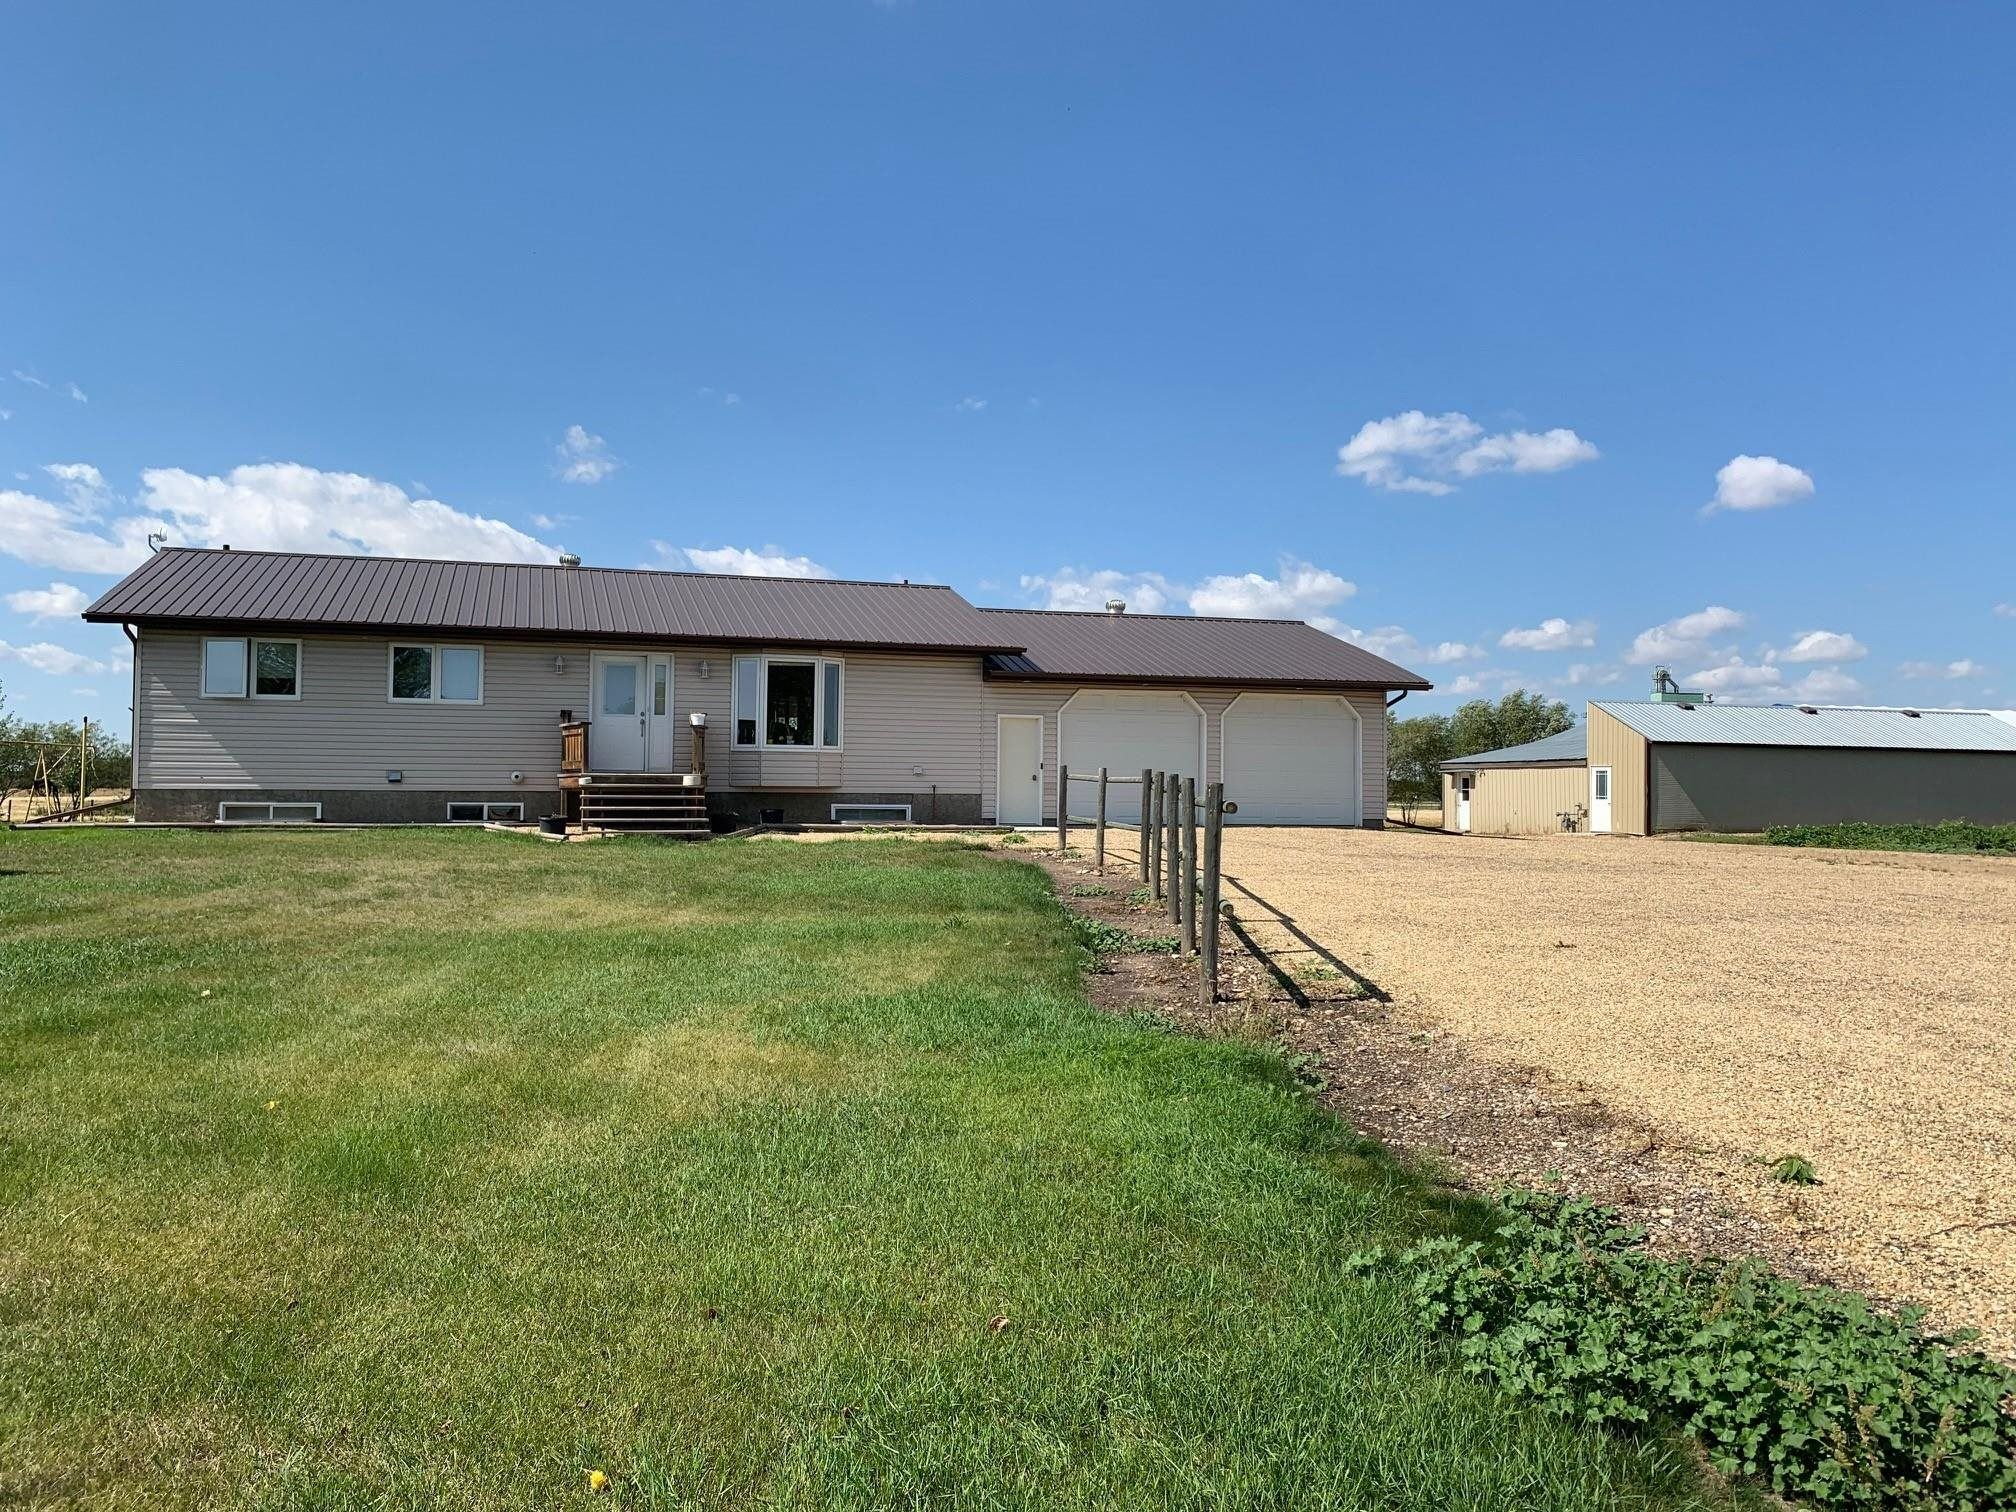 Main Photo: 44346 856 Highway: Rural Flagstaff County House for sale : MLS®# E4261041